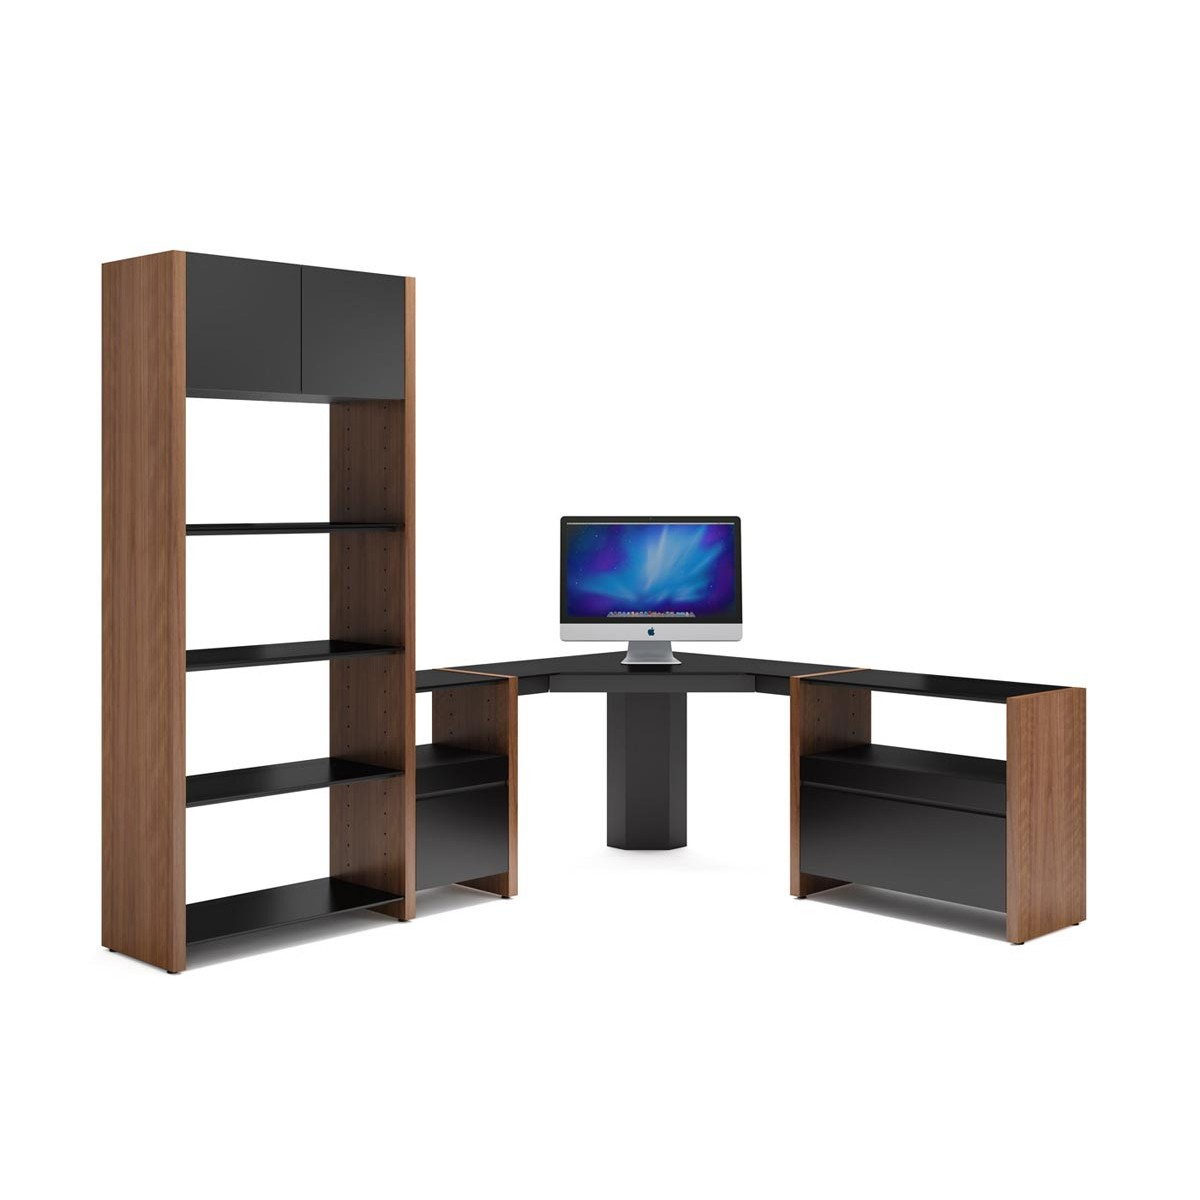 semblance office modular system desk. BDI Semblance Office 5464-CS Modular System Desk A